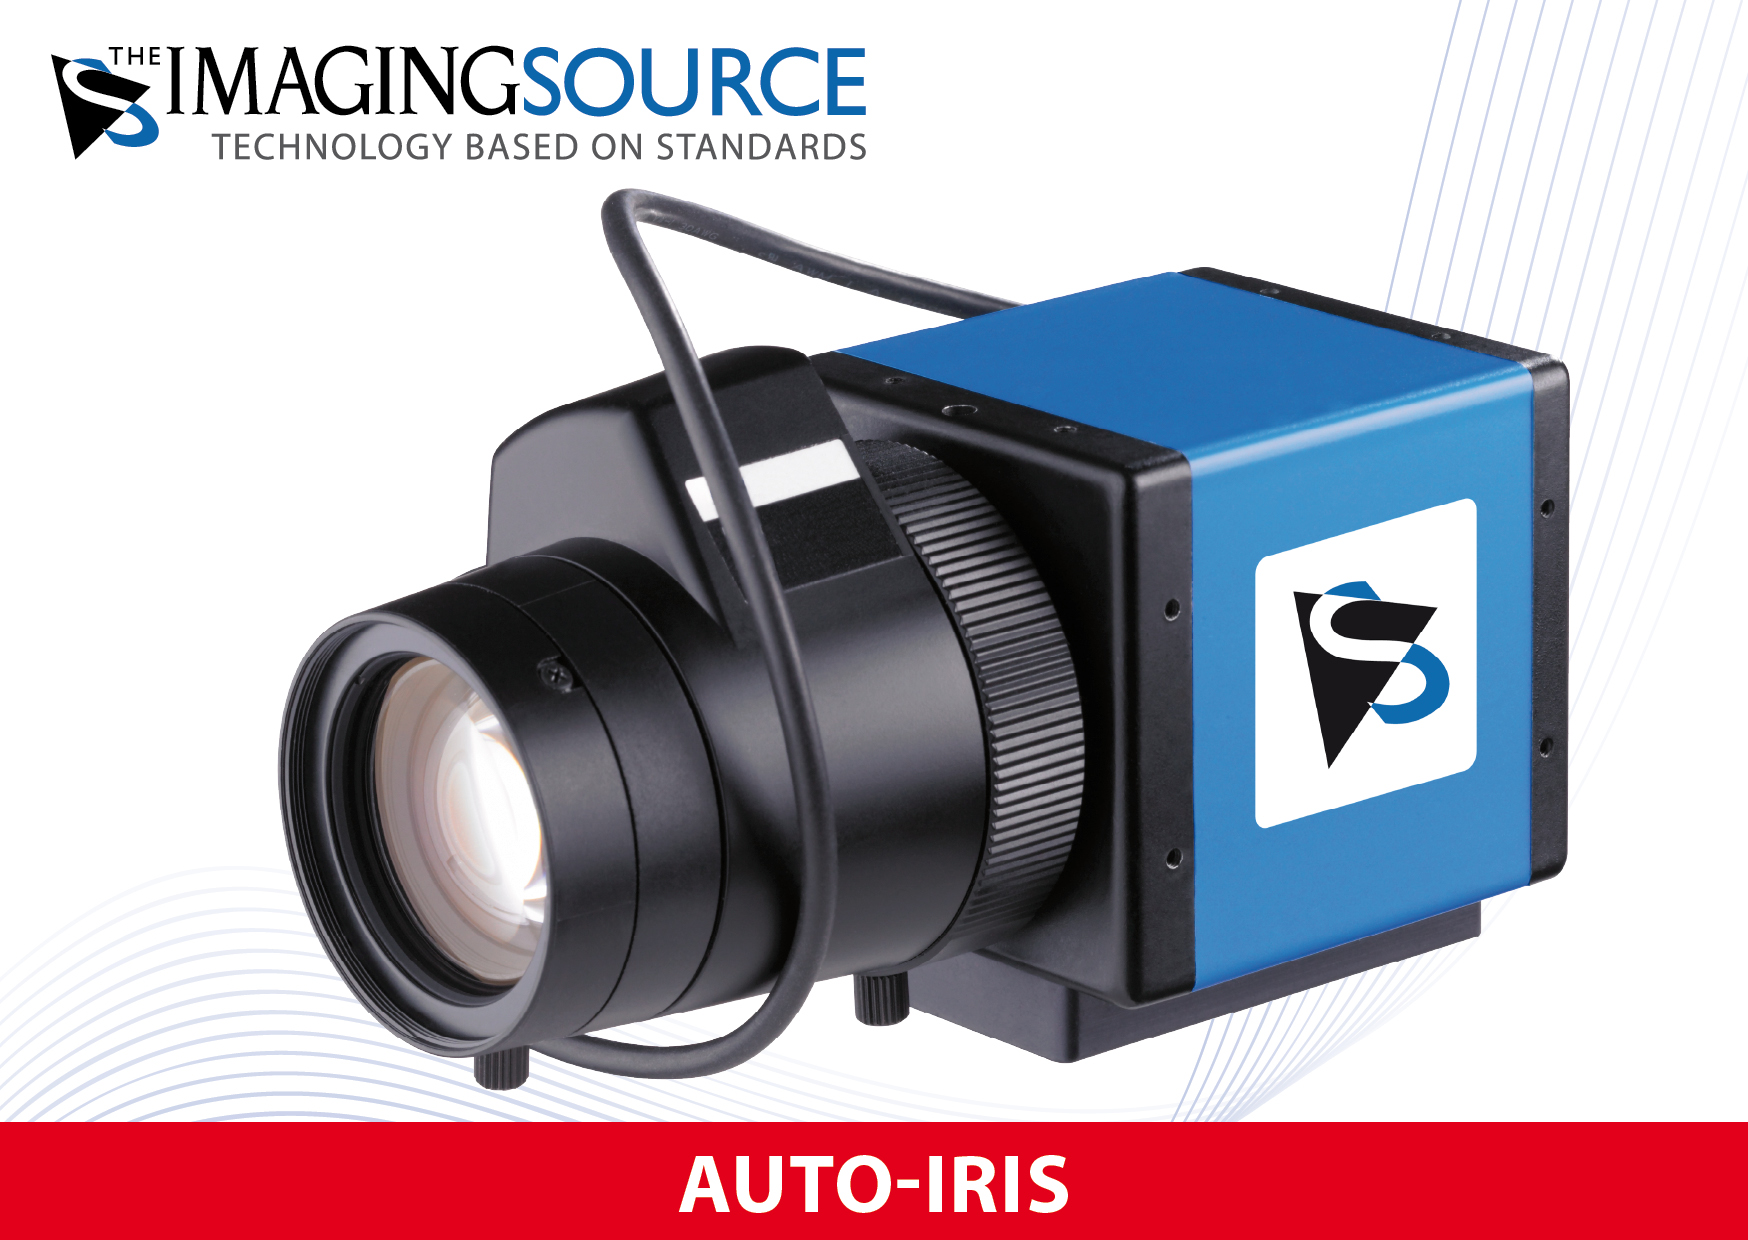 THE IMAGING SOURCE GIGE SERIES ASTRONOMY CAMERA DRIVERS FOR WINDOWS